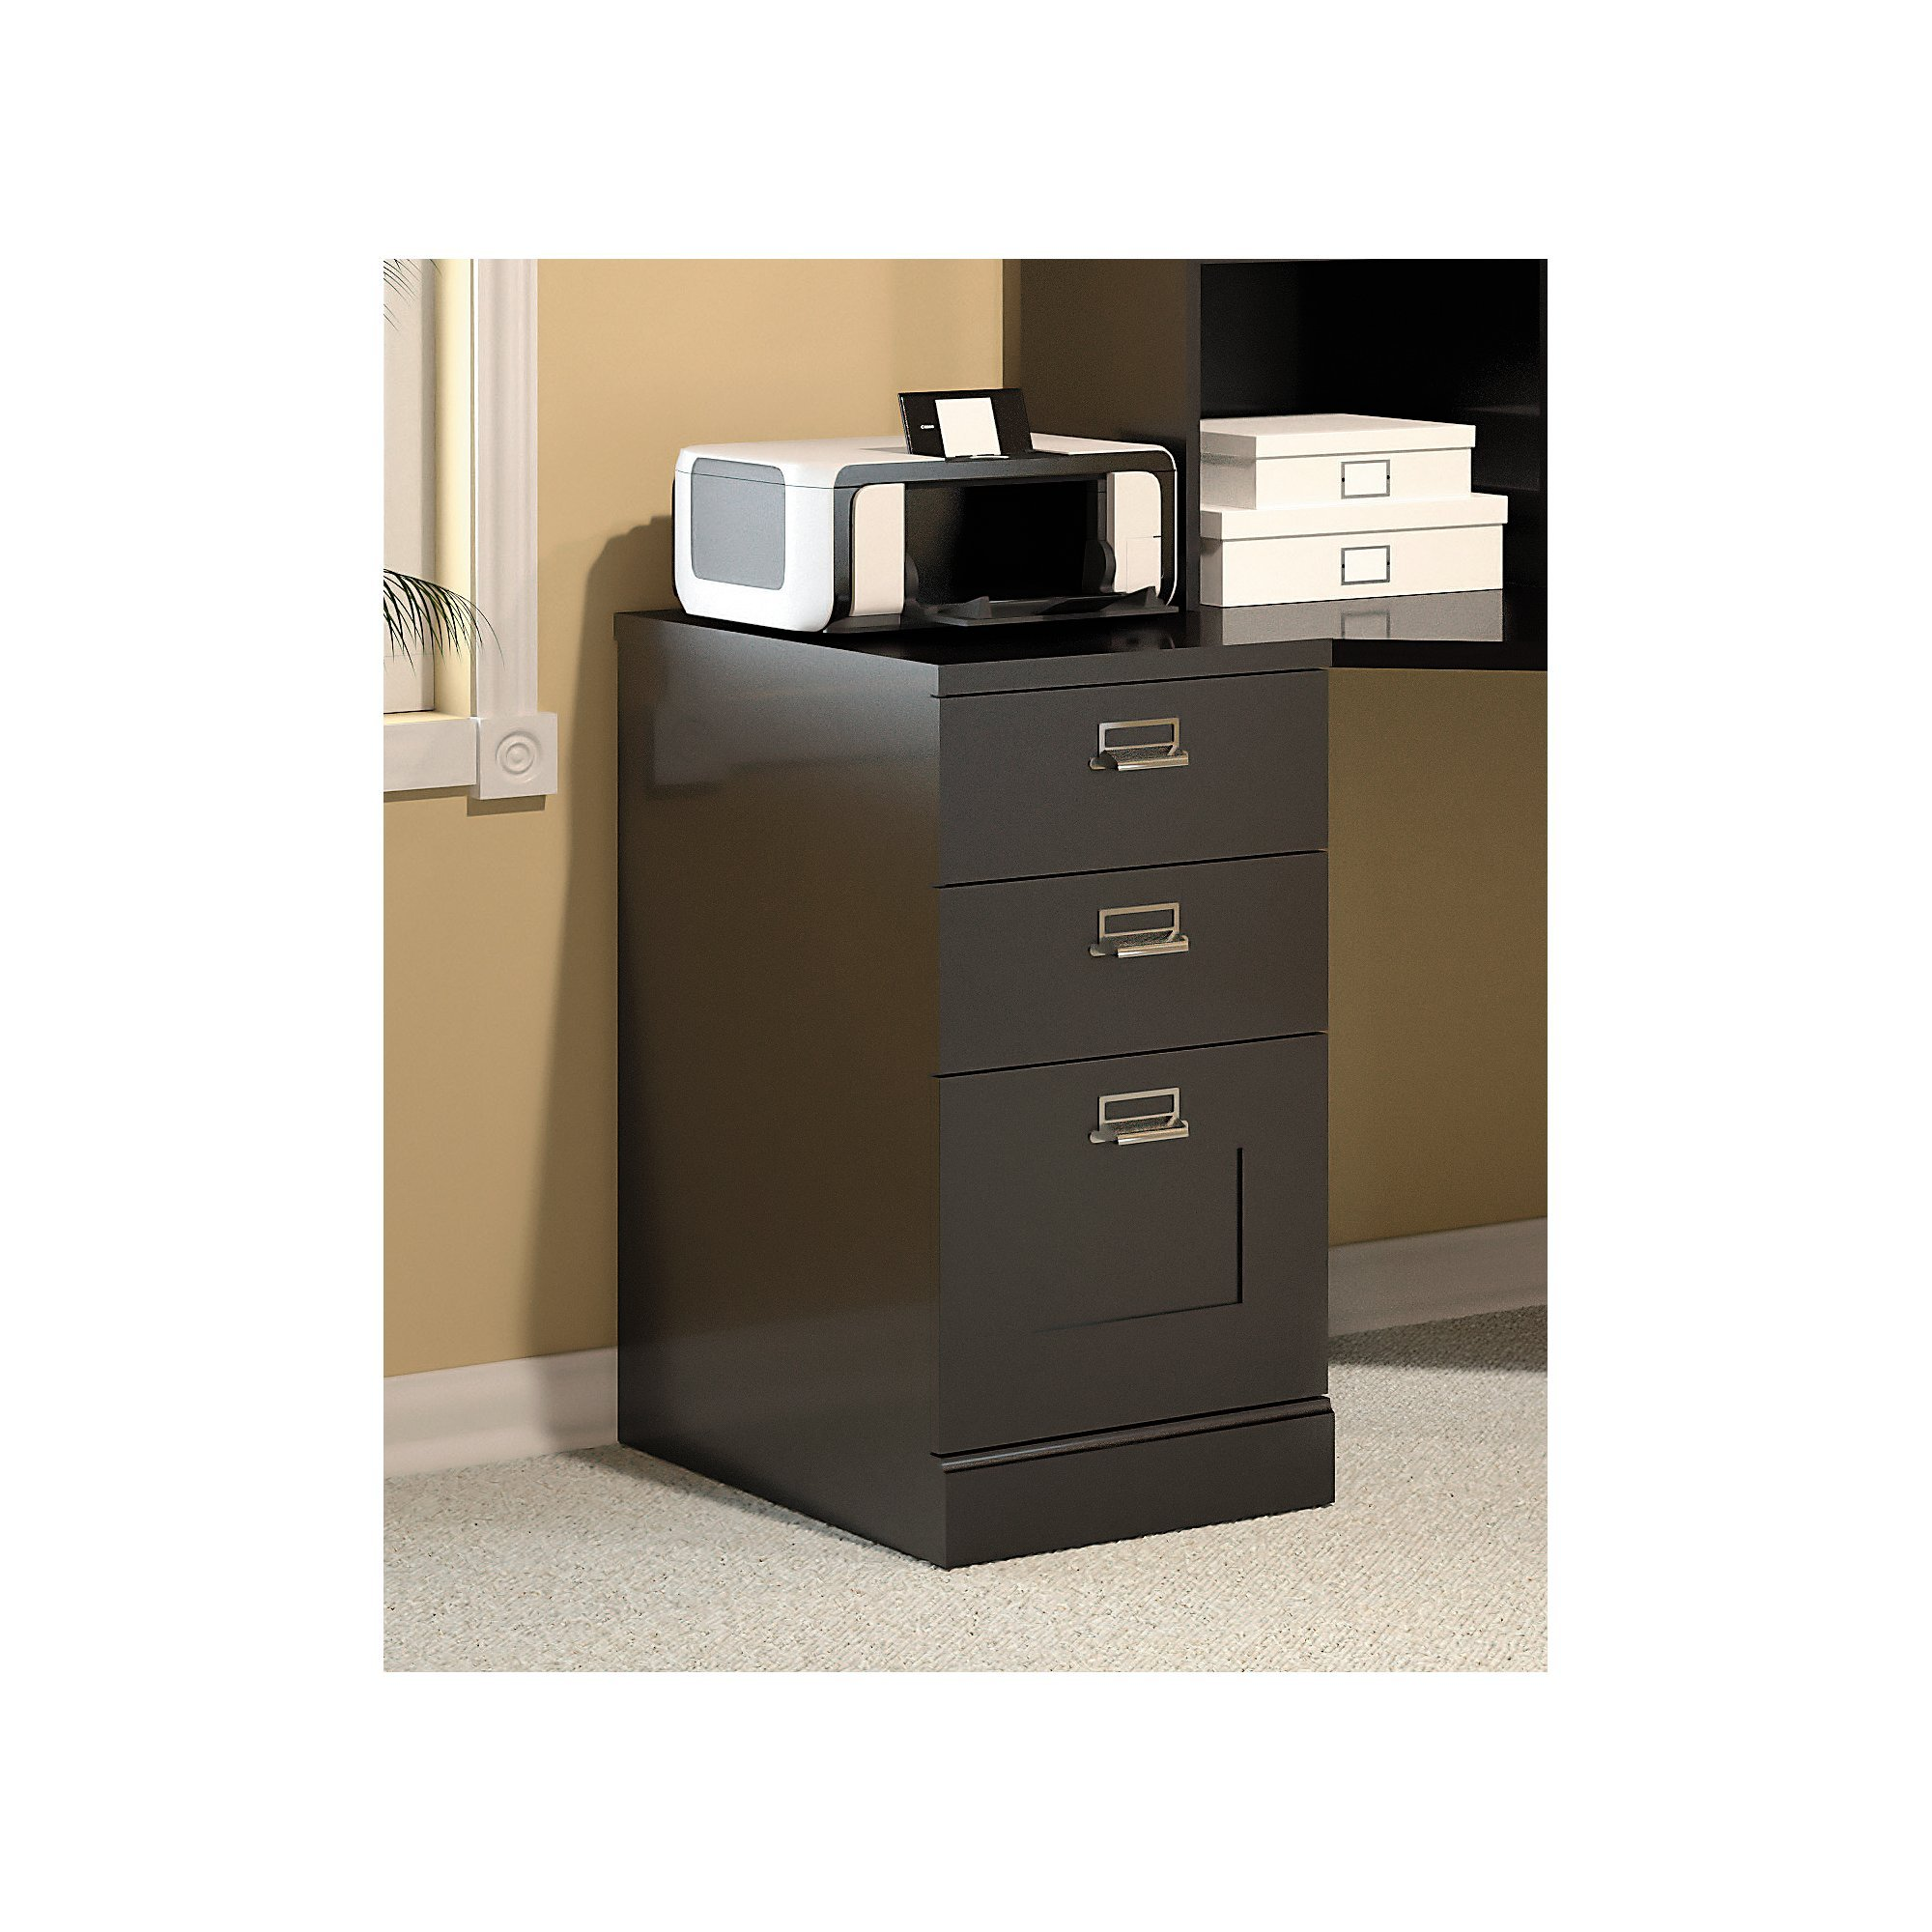 Bush Furniture Stockport 3 Drawer File Cabinet in Classic Black by Bush Furniture